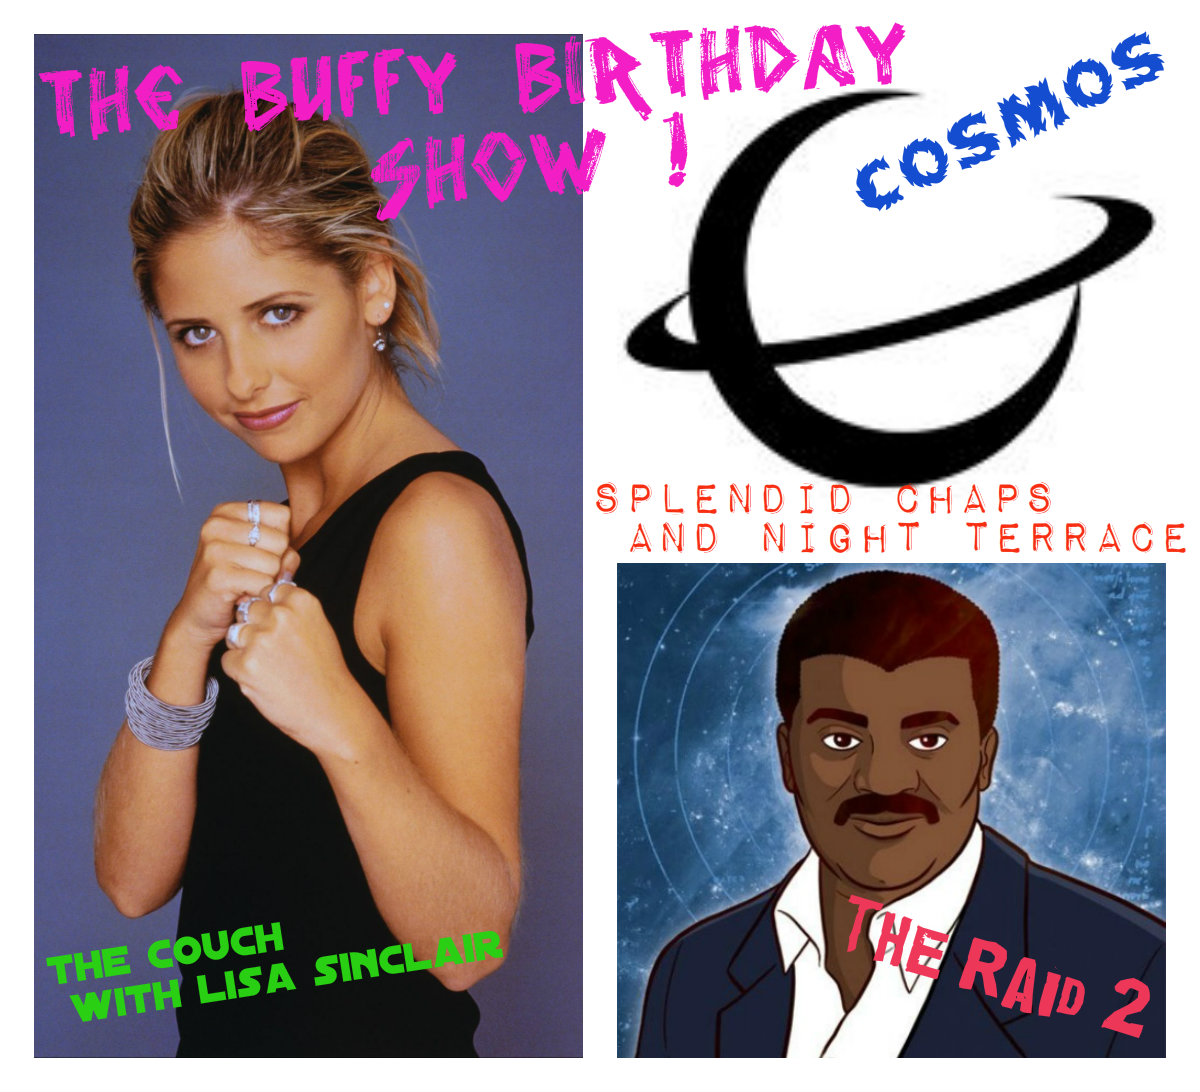 Birthday Buffy Show image for Podcast